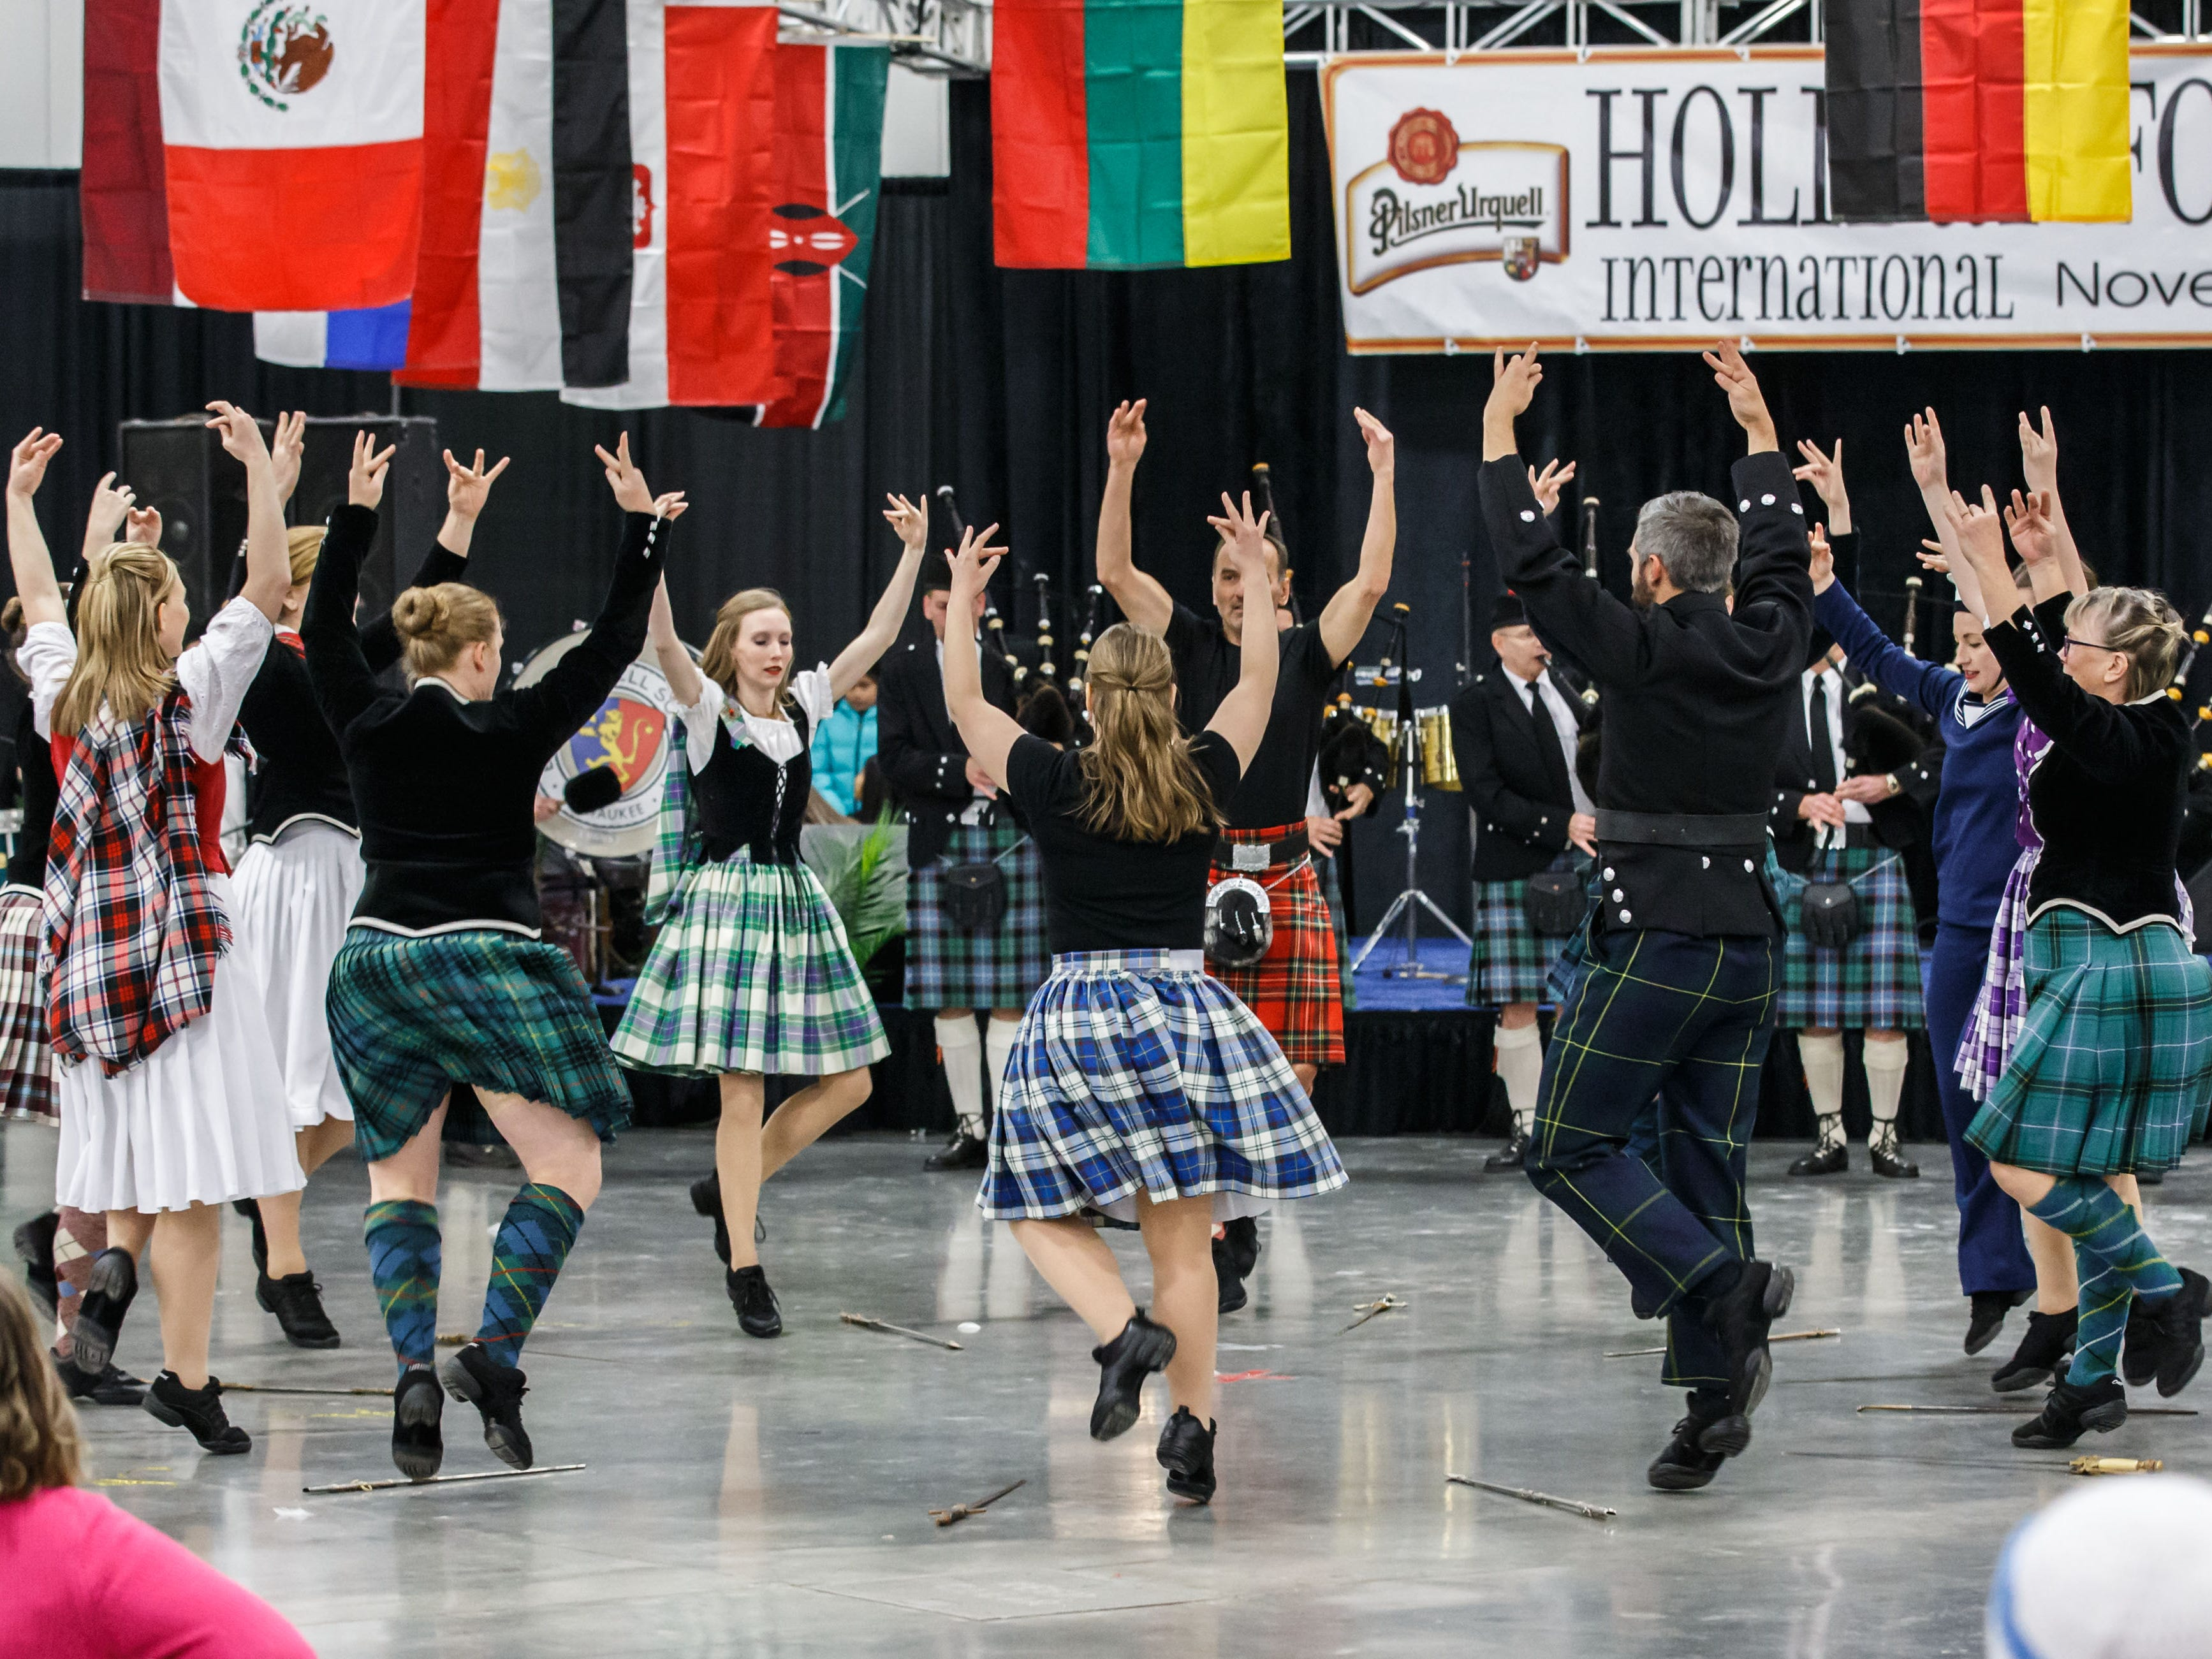 Scottish dancers perform a sword dance during the 75th annual Holiday Folk Fair International at State Fair Park on Saturday, Nov. 17, 2018. The festival celebrates southeastern Wisconsin's multicultural heritage through music, food, dance and art.